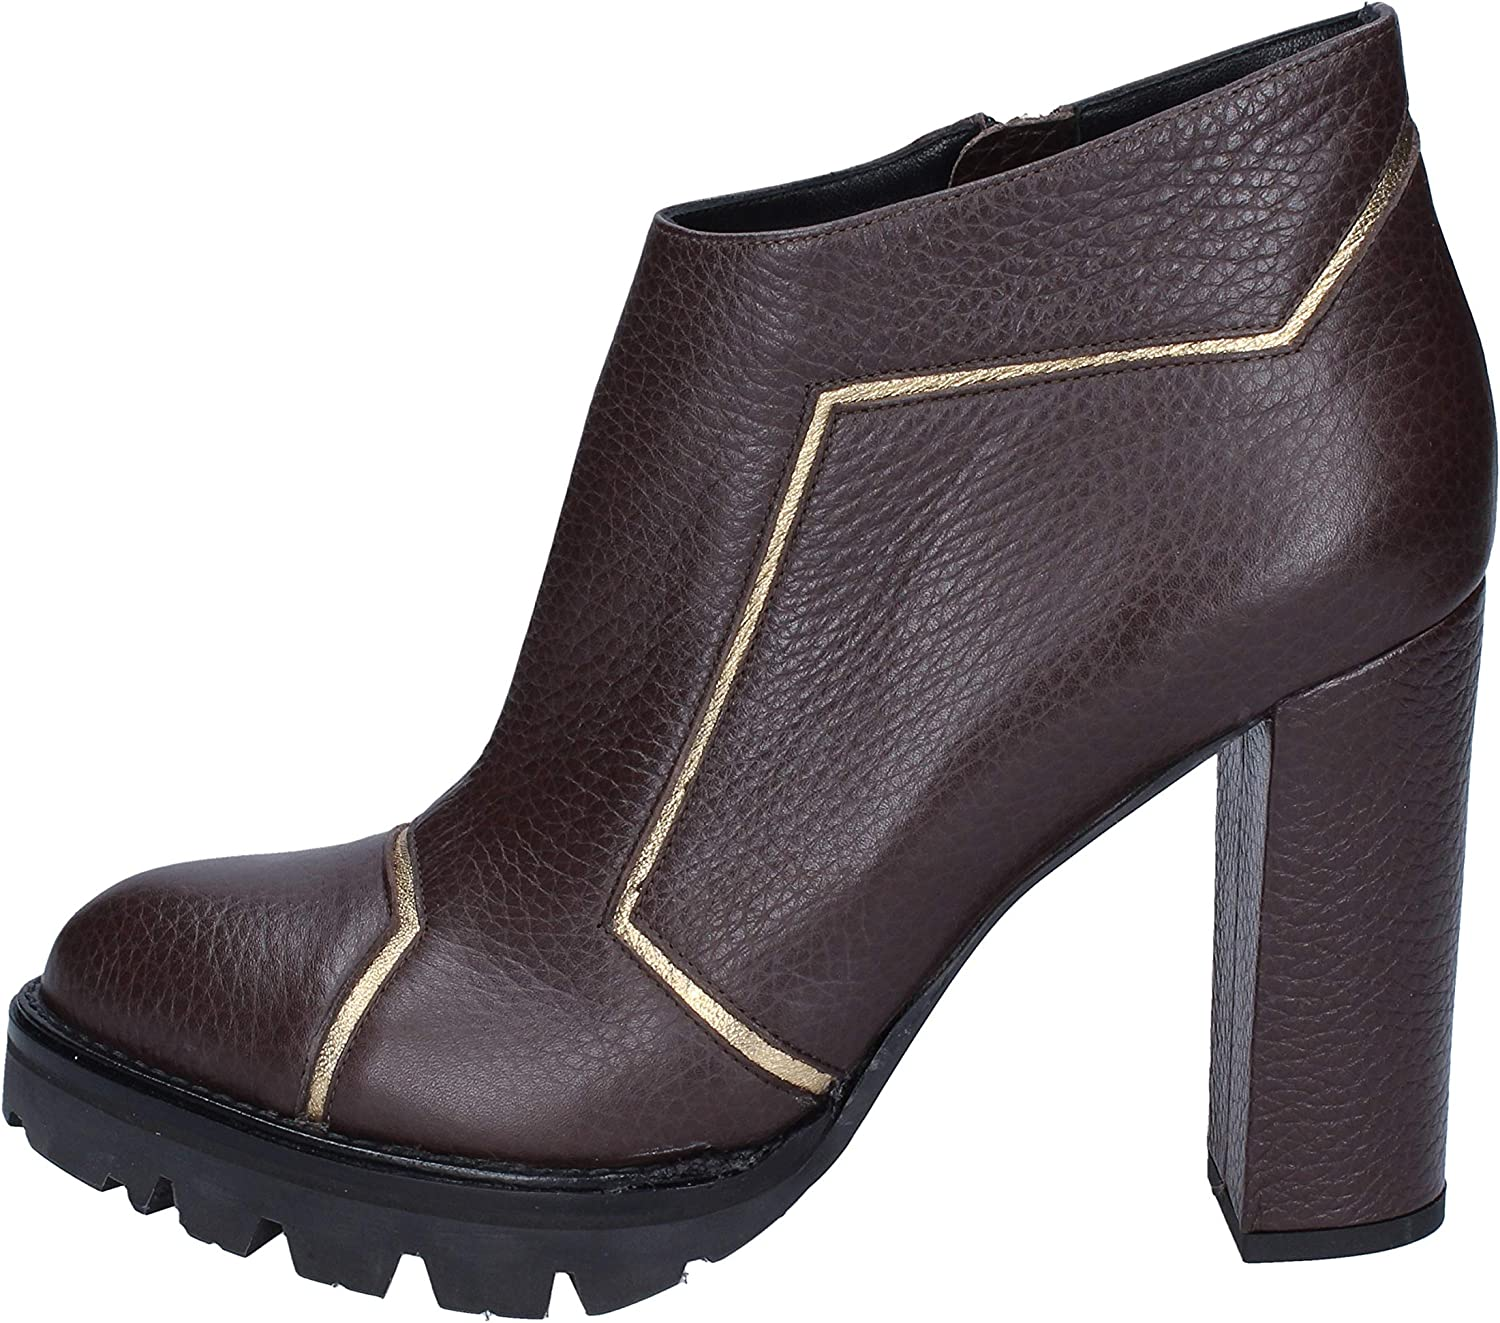 GIANNI MARRA Boots Womens Leather Brown